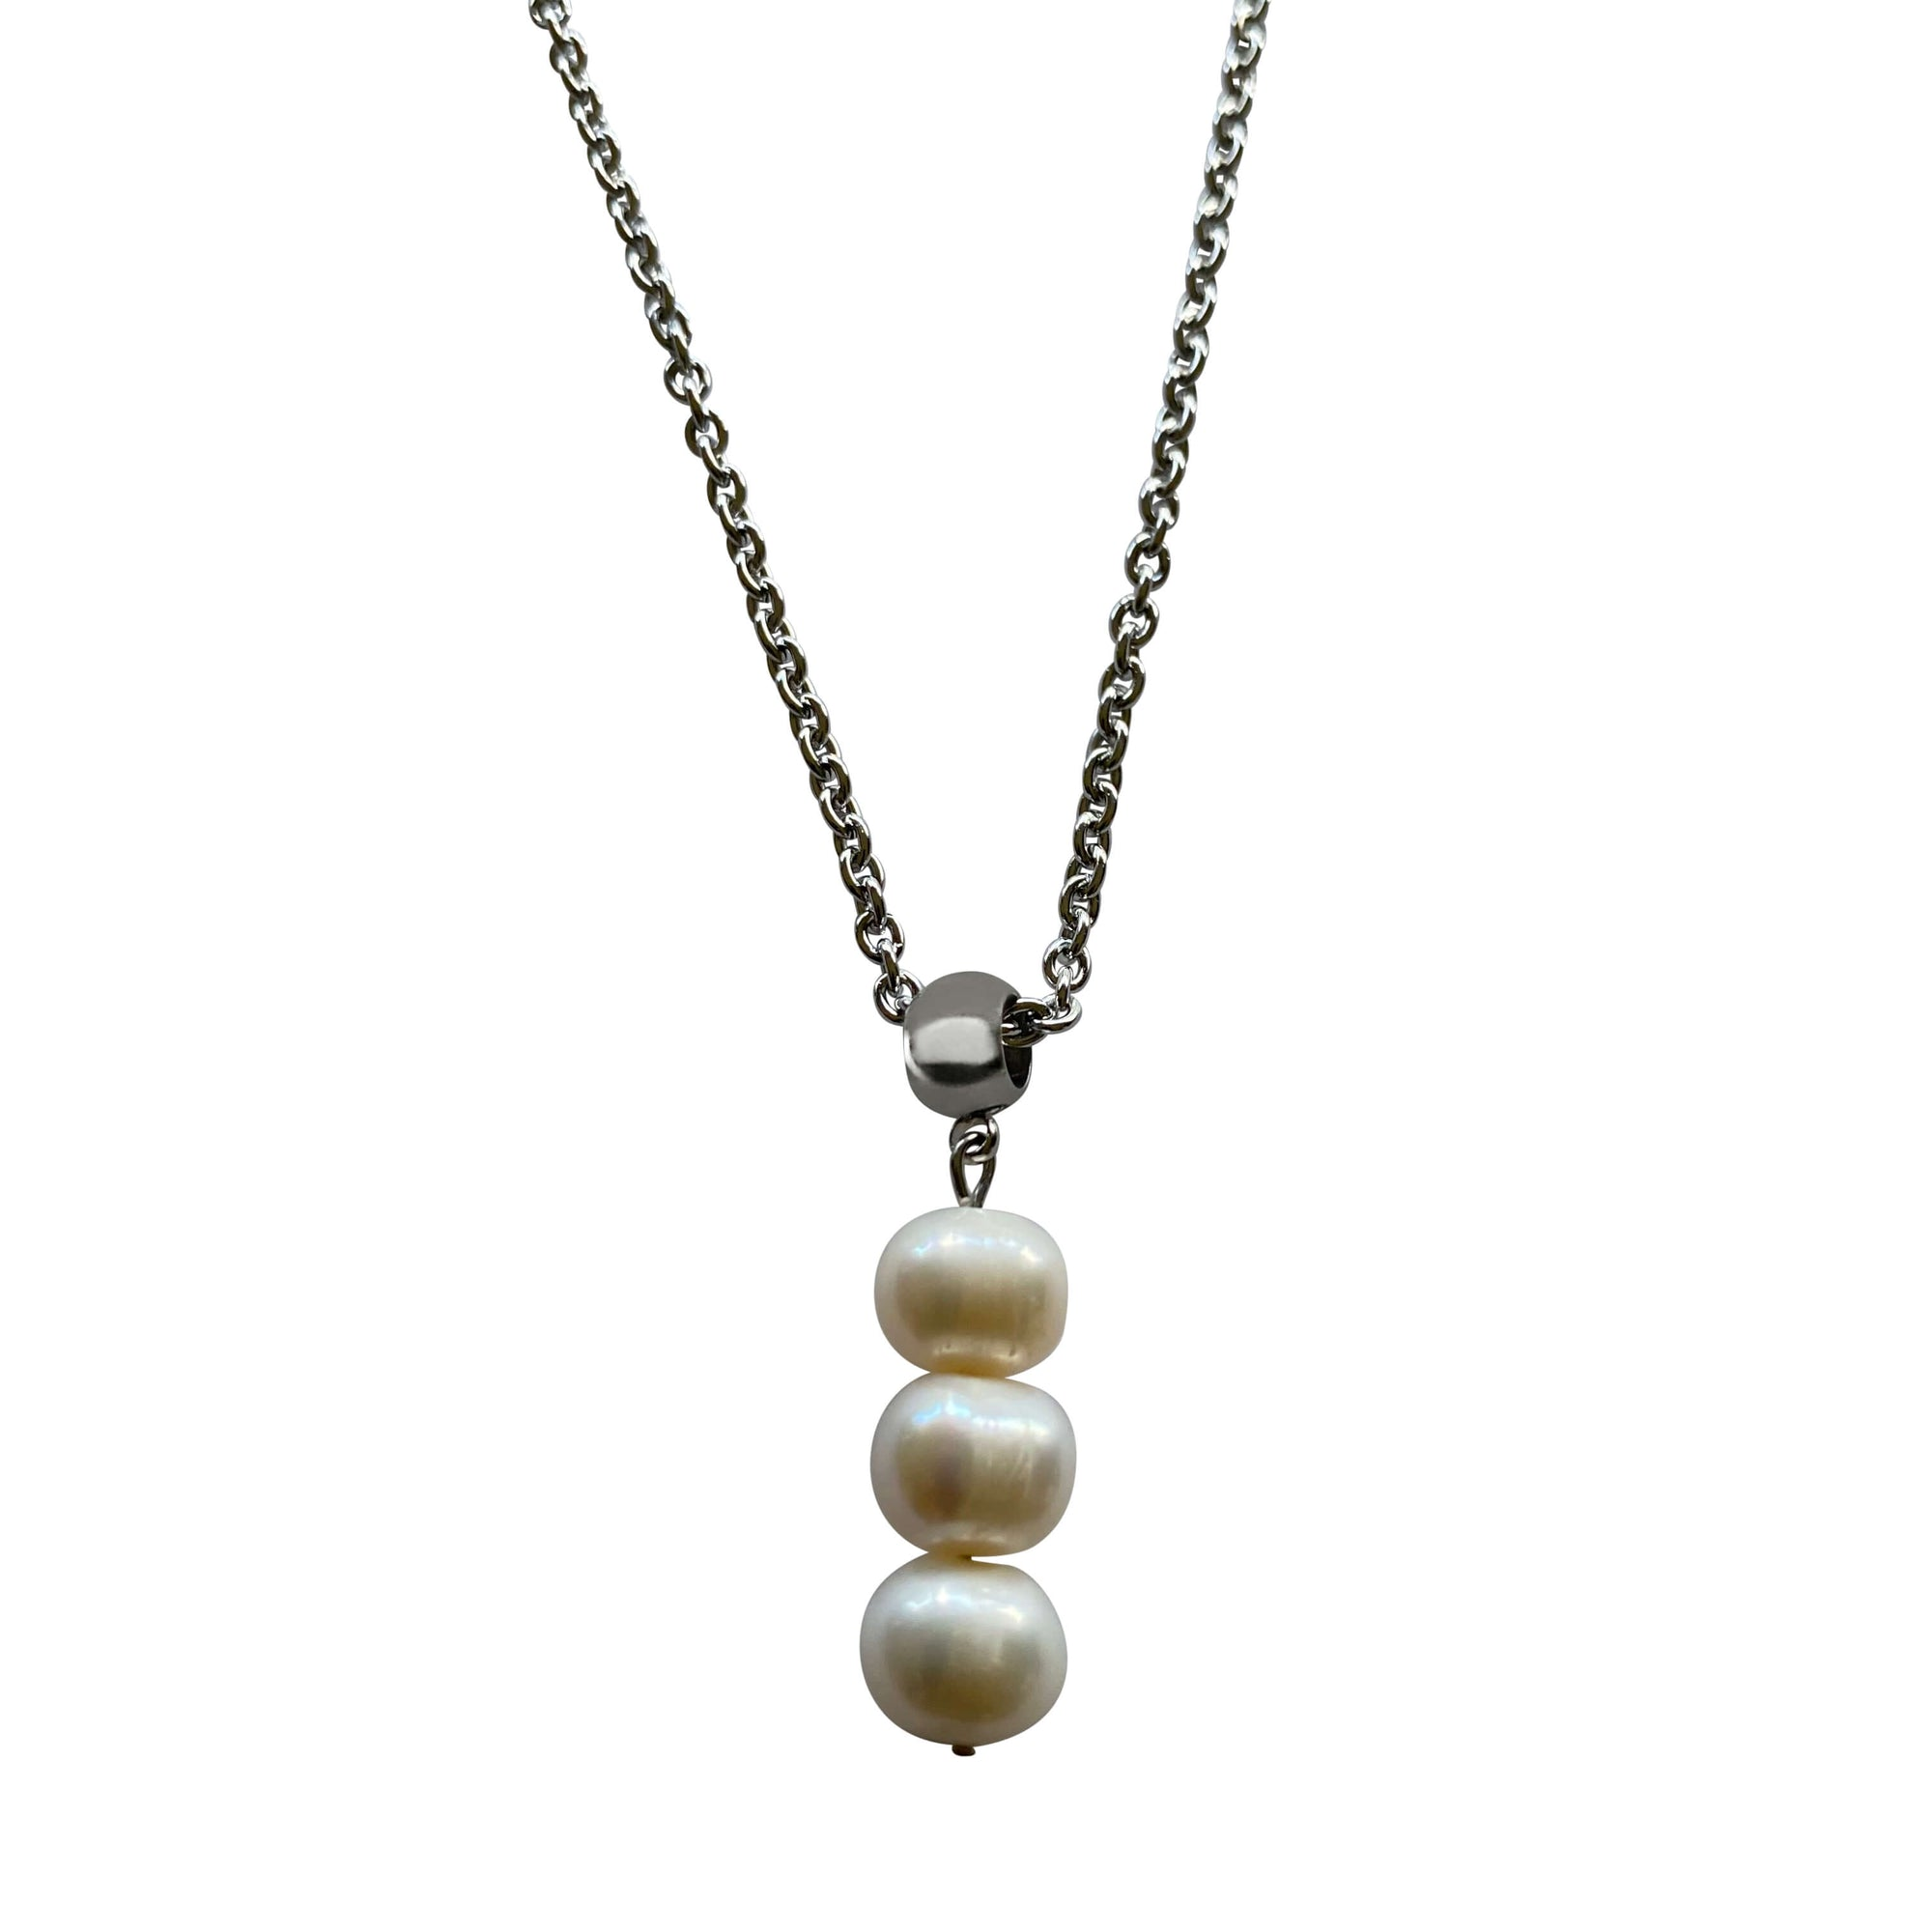 Three Freshwater Pearl Drop Pearl Necklace with Stainless Steel Silver Chain